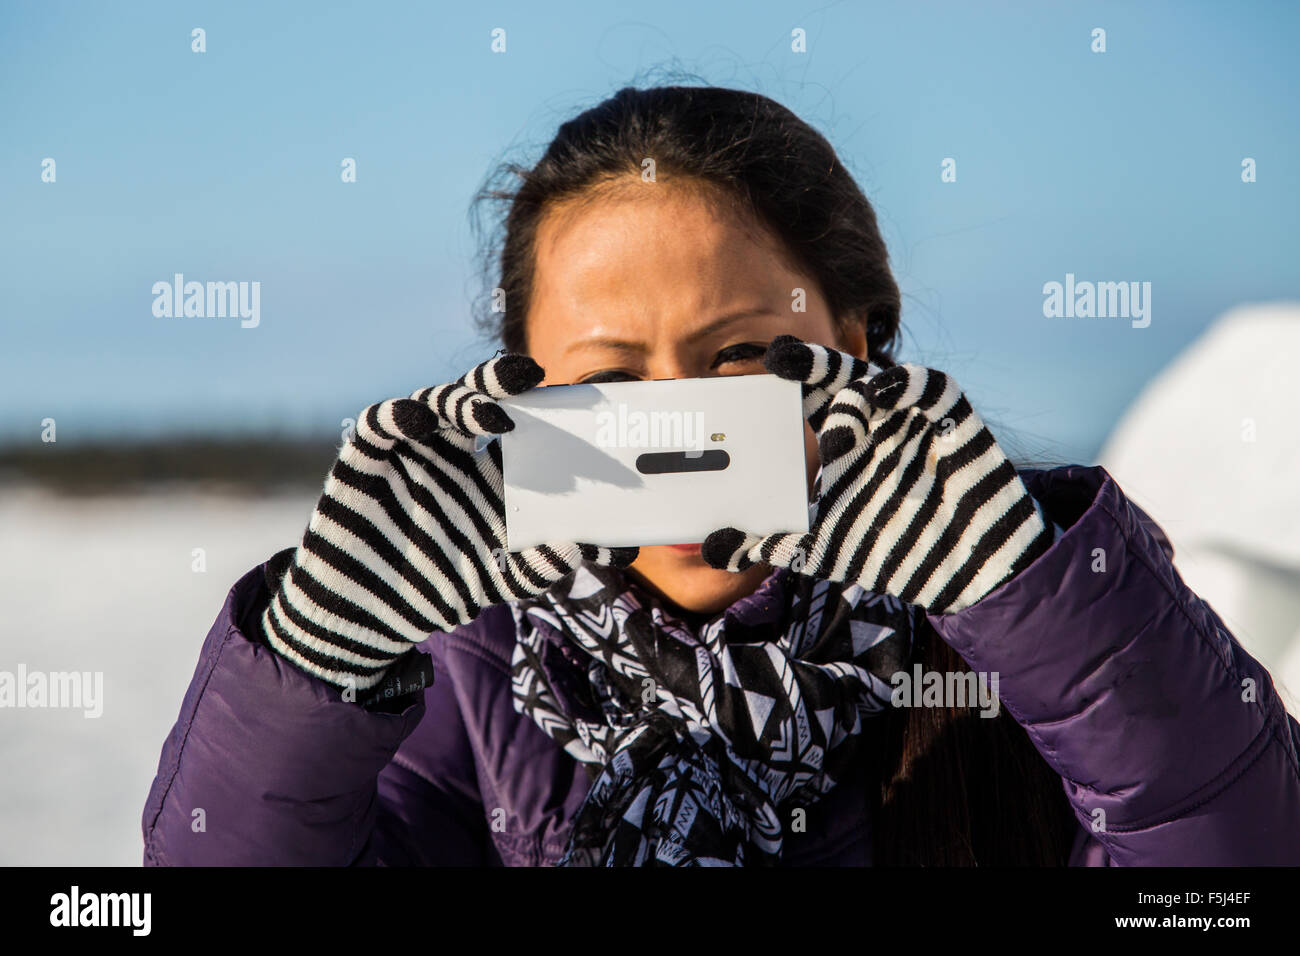 Female outdoor exercise in cold weather in winter Stock Photo